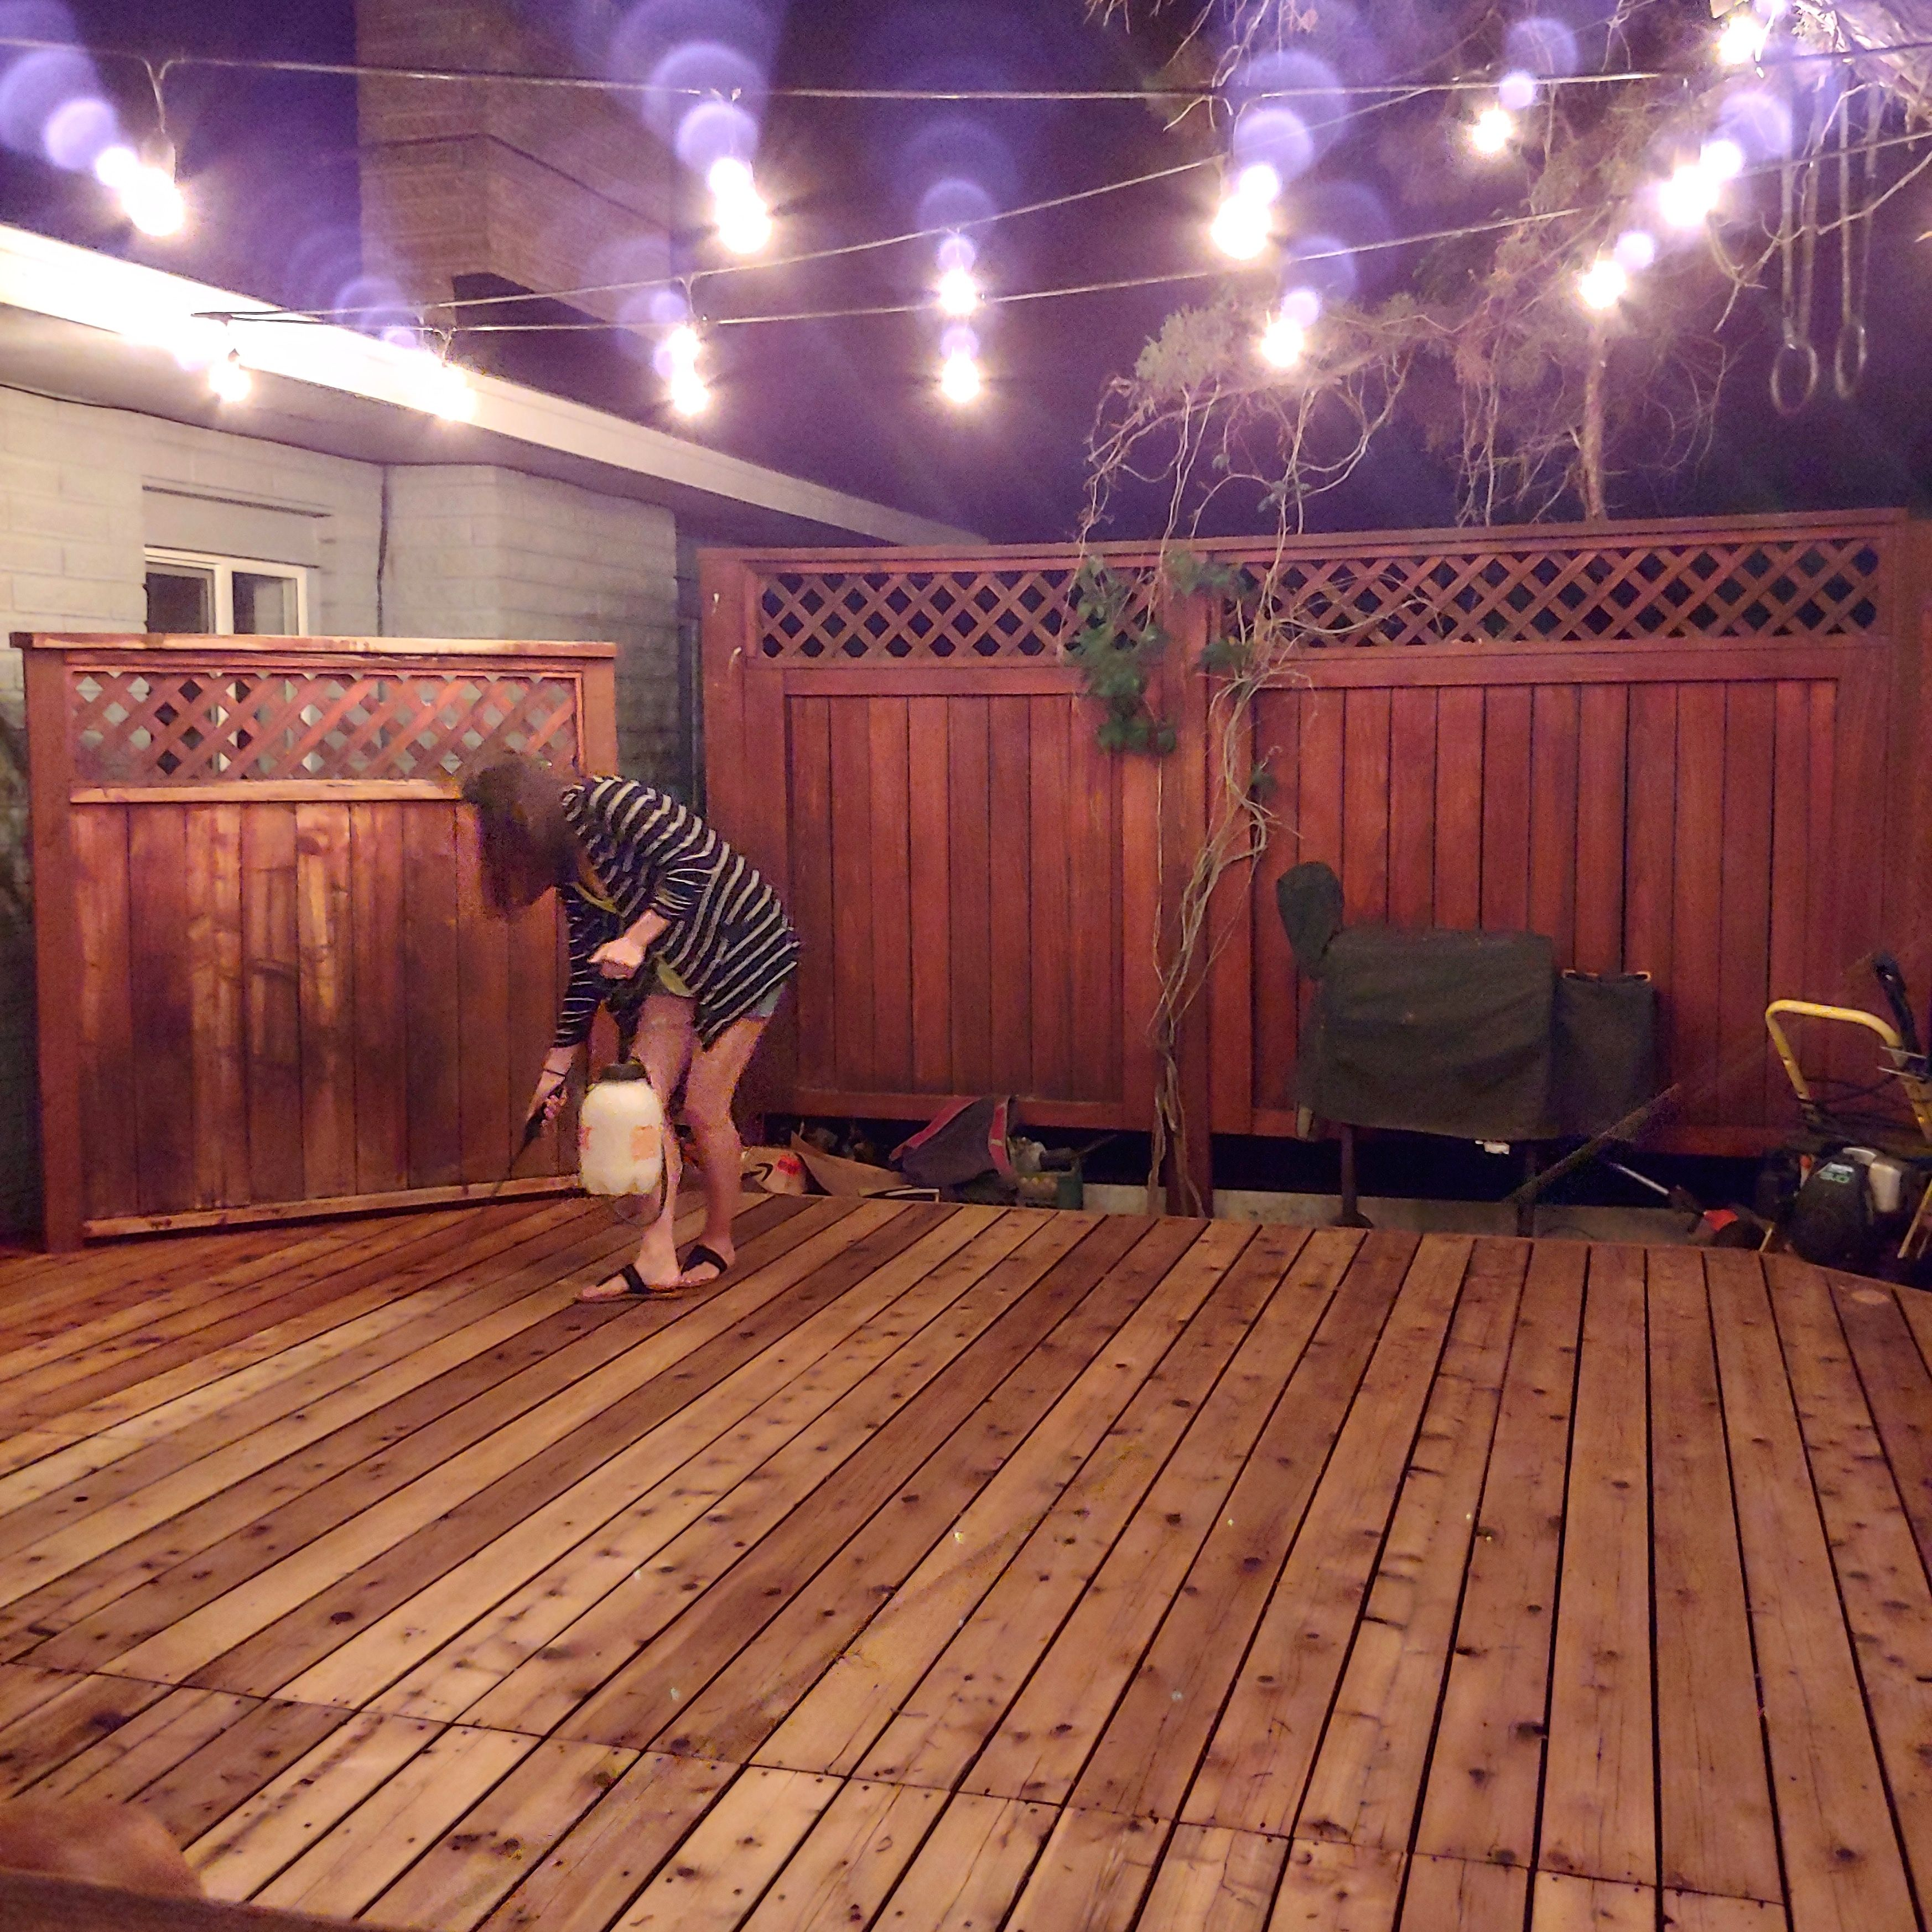 How To Restore A Deck That Has Been Neglected With Images Deck Restoration Diy Deck Deck